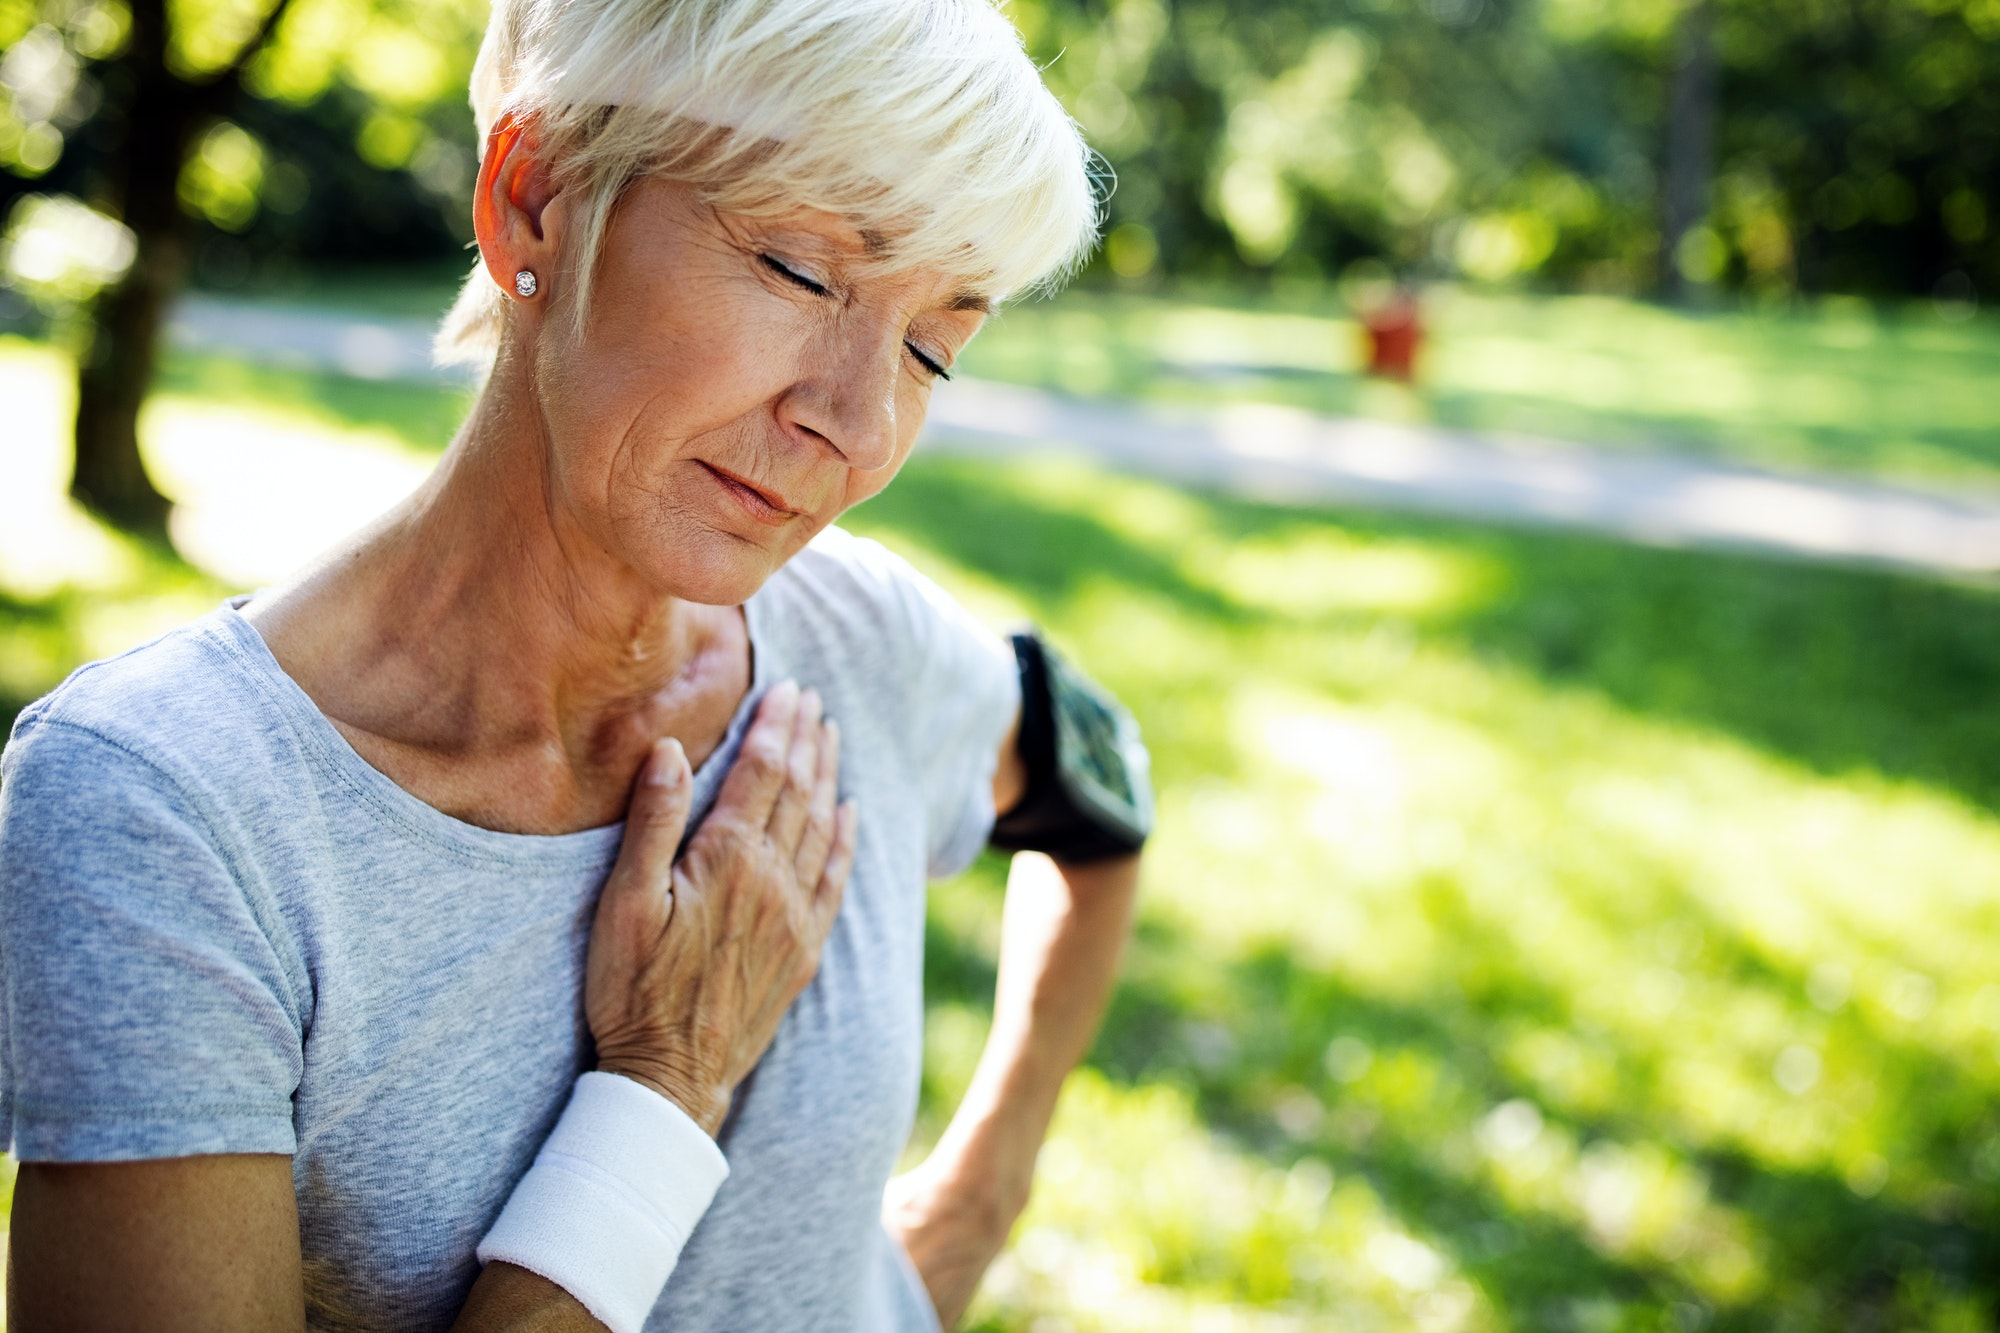 Mature woman exercising outdoors to prevent cardiovascular diseases and heart attack